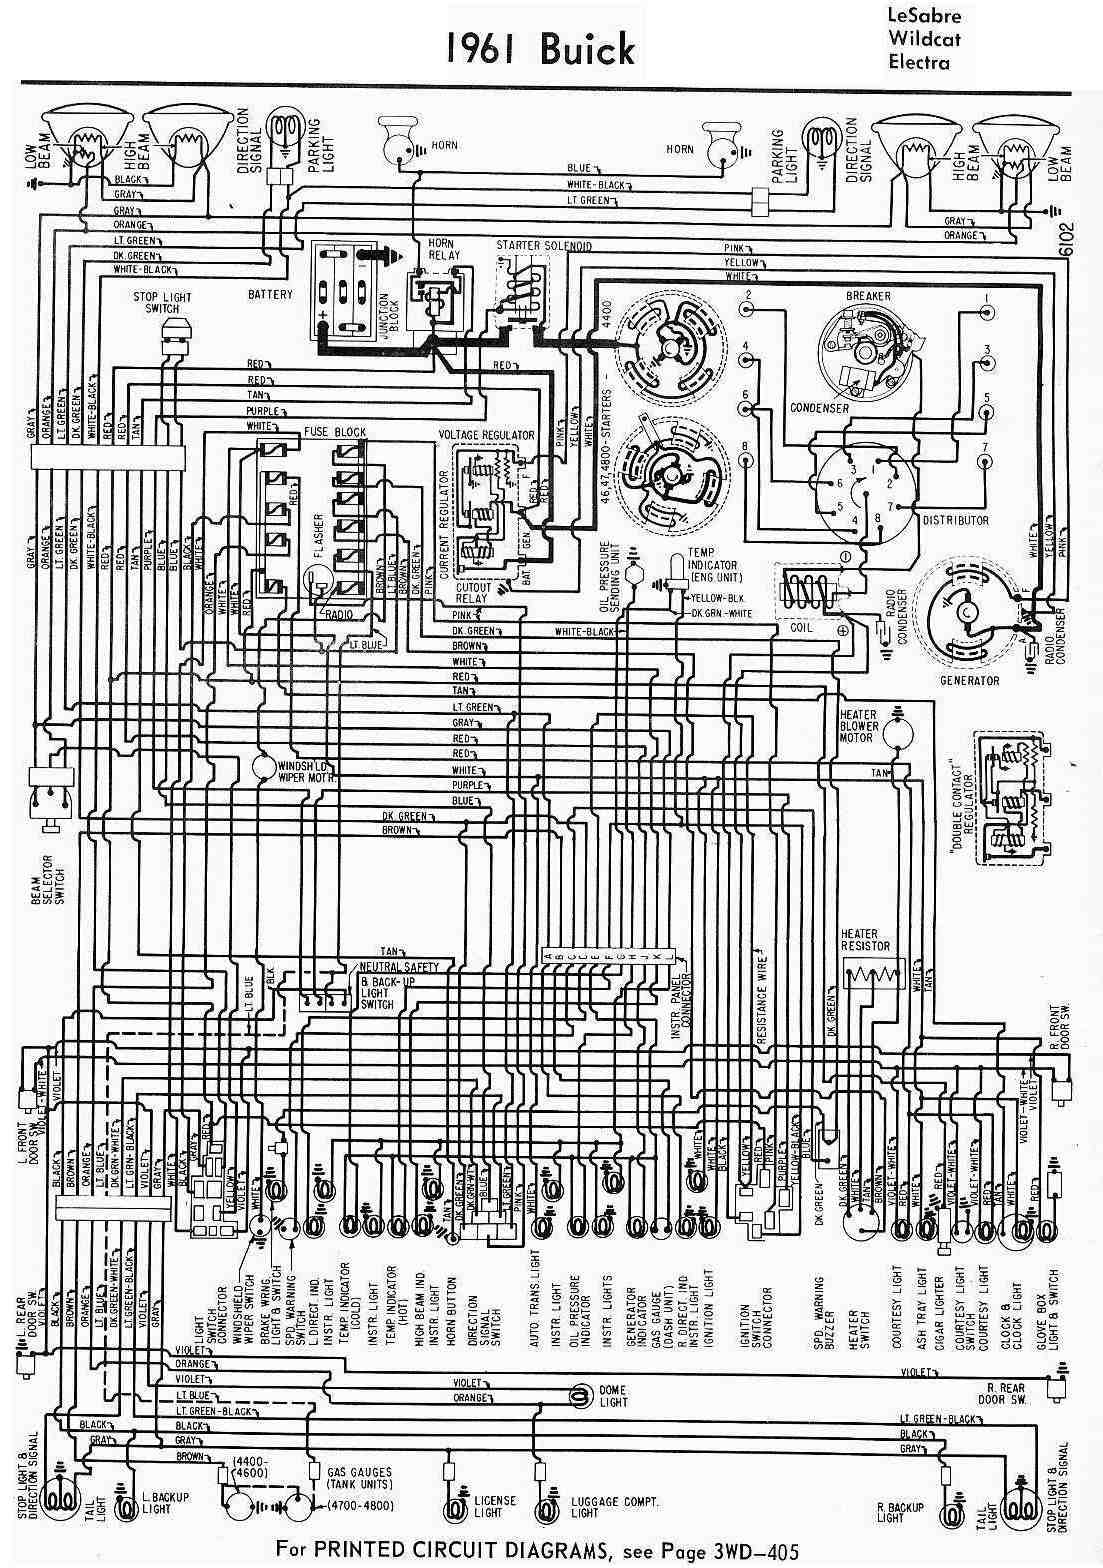 1966 Buick Wildcat Wiring Diagram 1998 Ford F 150 Engine 95 Riviera Cooling Fan Relay Location | Get Free Image About